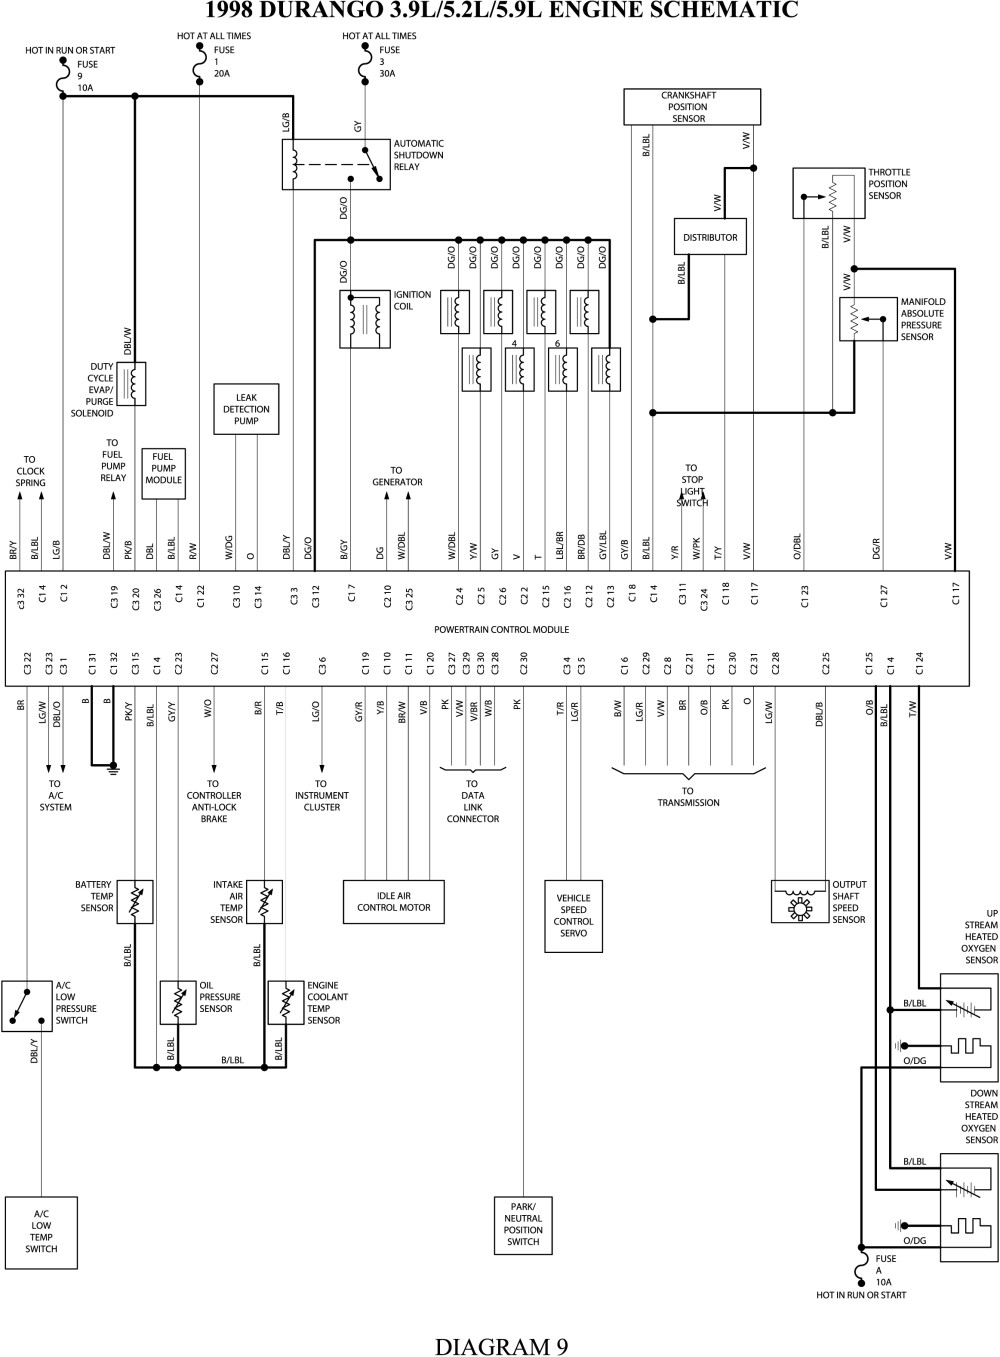 1992 Dodge Spirit Wiring Diagram As Well Volvo 940 Fuse Box Location Headlight Circuit Diagrams Wire Rh Abetter Pw